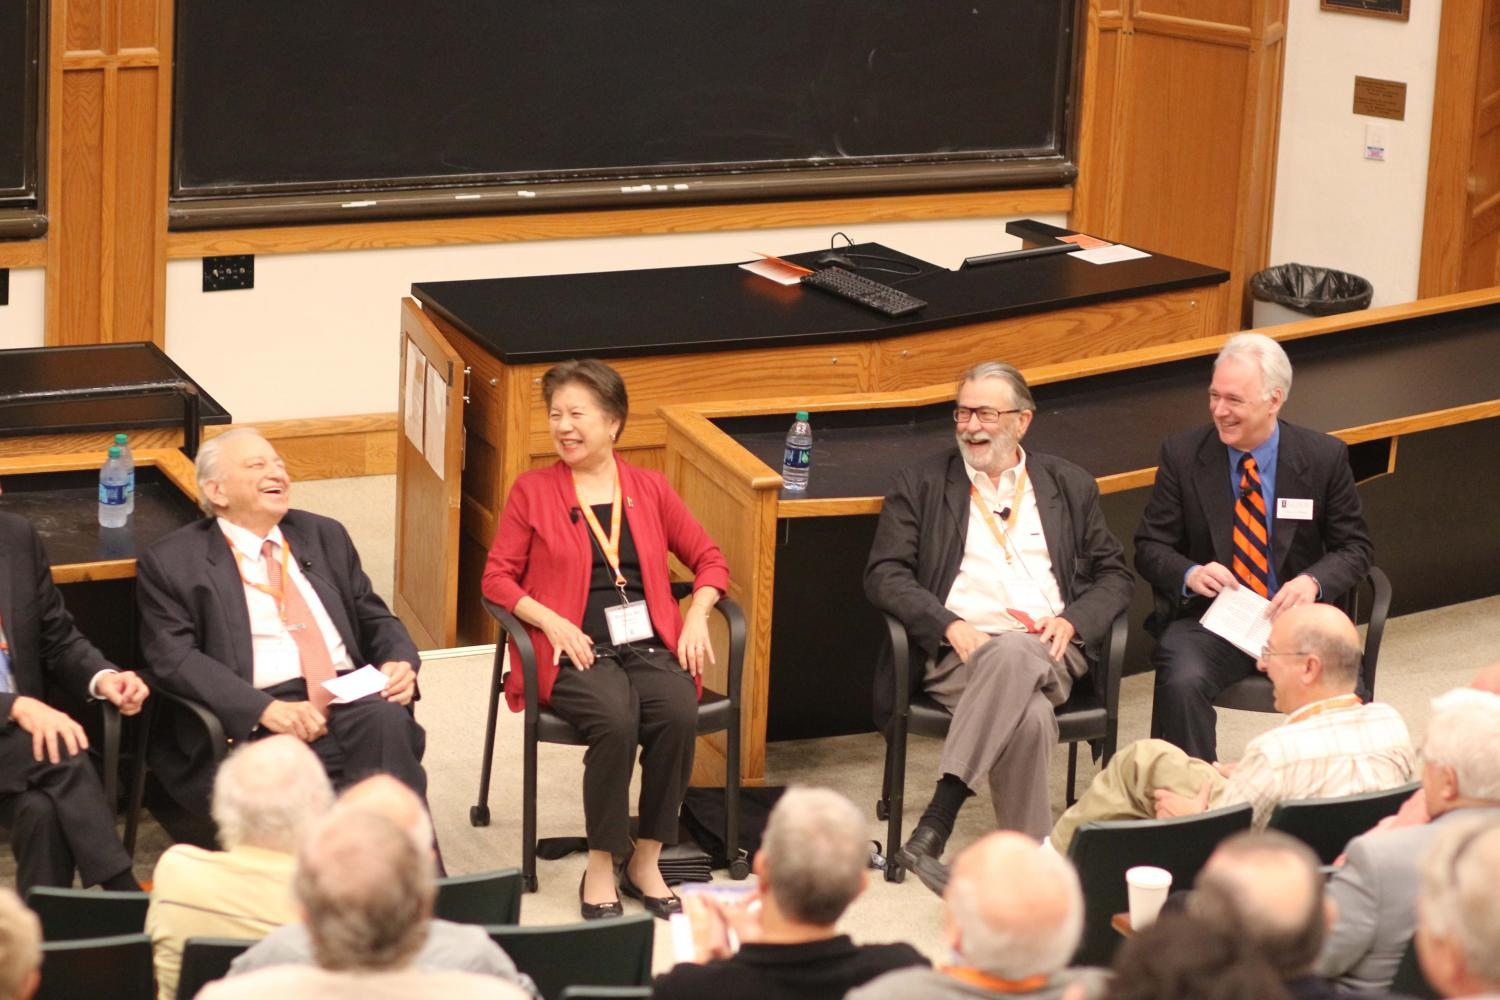 Sesquicentennial History of General Chemistry panel with Greg Girolami, Michael Garst, Marinda Wu and Rudolph Marcus. The celebration took place Friday and Saturday. Gromali moderated the panel and gave samples of his new book.